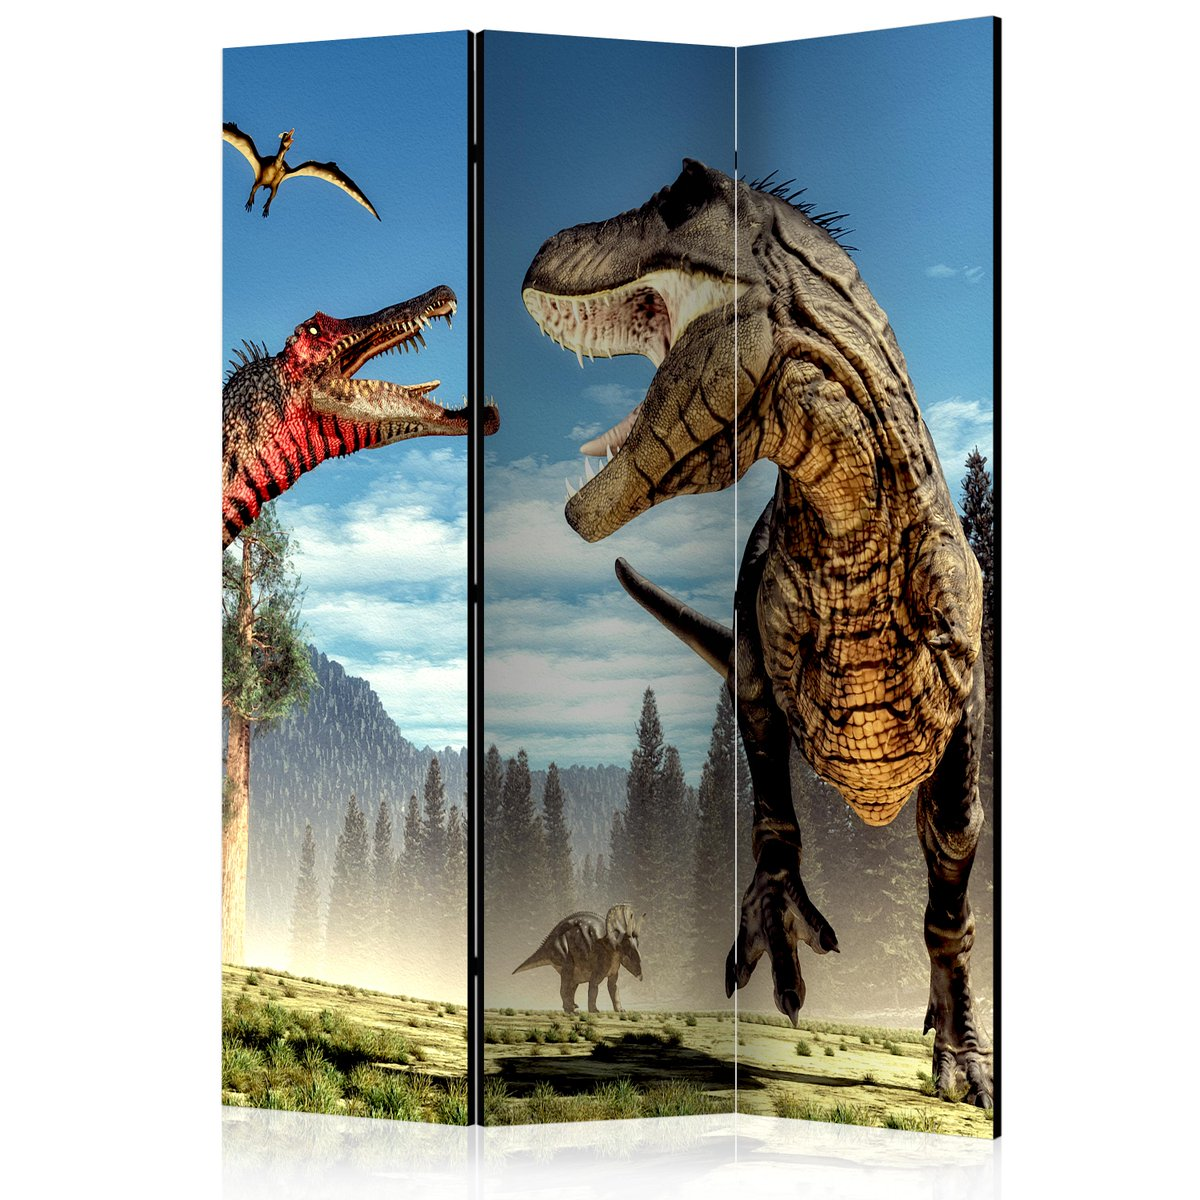 Paravent 3 volets DINOSAURS FIGHT à 155,90 € sur  #Enfants #mobilier #deco #design #Artgeist # https://www.recollection.fr/pour-les-enfants/20359-paravent-3-volets-dinosaures-lutte-salle-intercalaires-3664551297806.html …